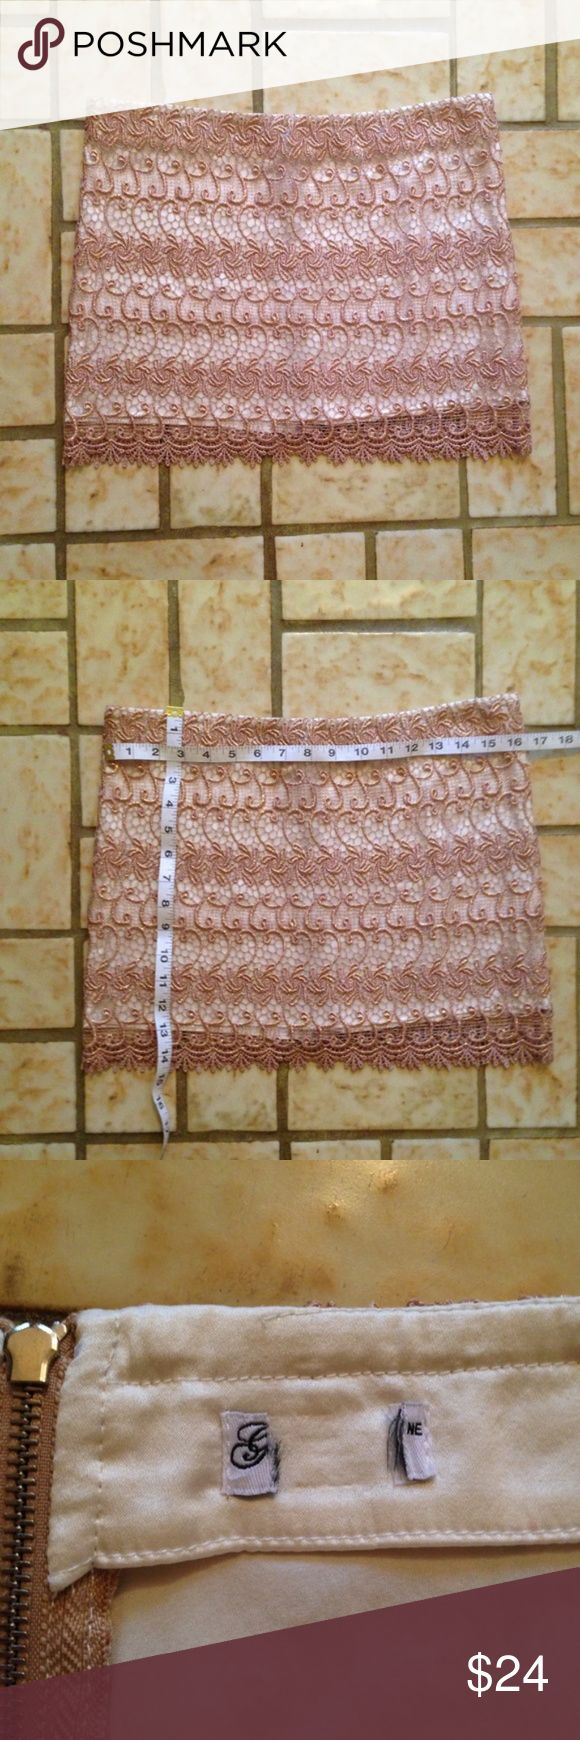 Metallic Gold Lace Silk Lined Mini Skirt This skirt is beautiful! It is rose gold in person with cream, silk lining. It zips in the back and fits like a medium, though the tag is cut out.  Measurements can be seen in the pictures. Please let me know if you have any questions! Bundle with my other items for a good deal. Thank you for looking! Skirts Mini